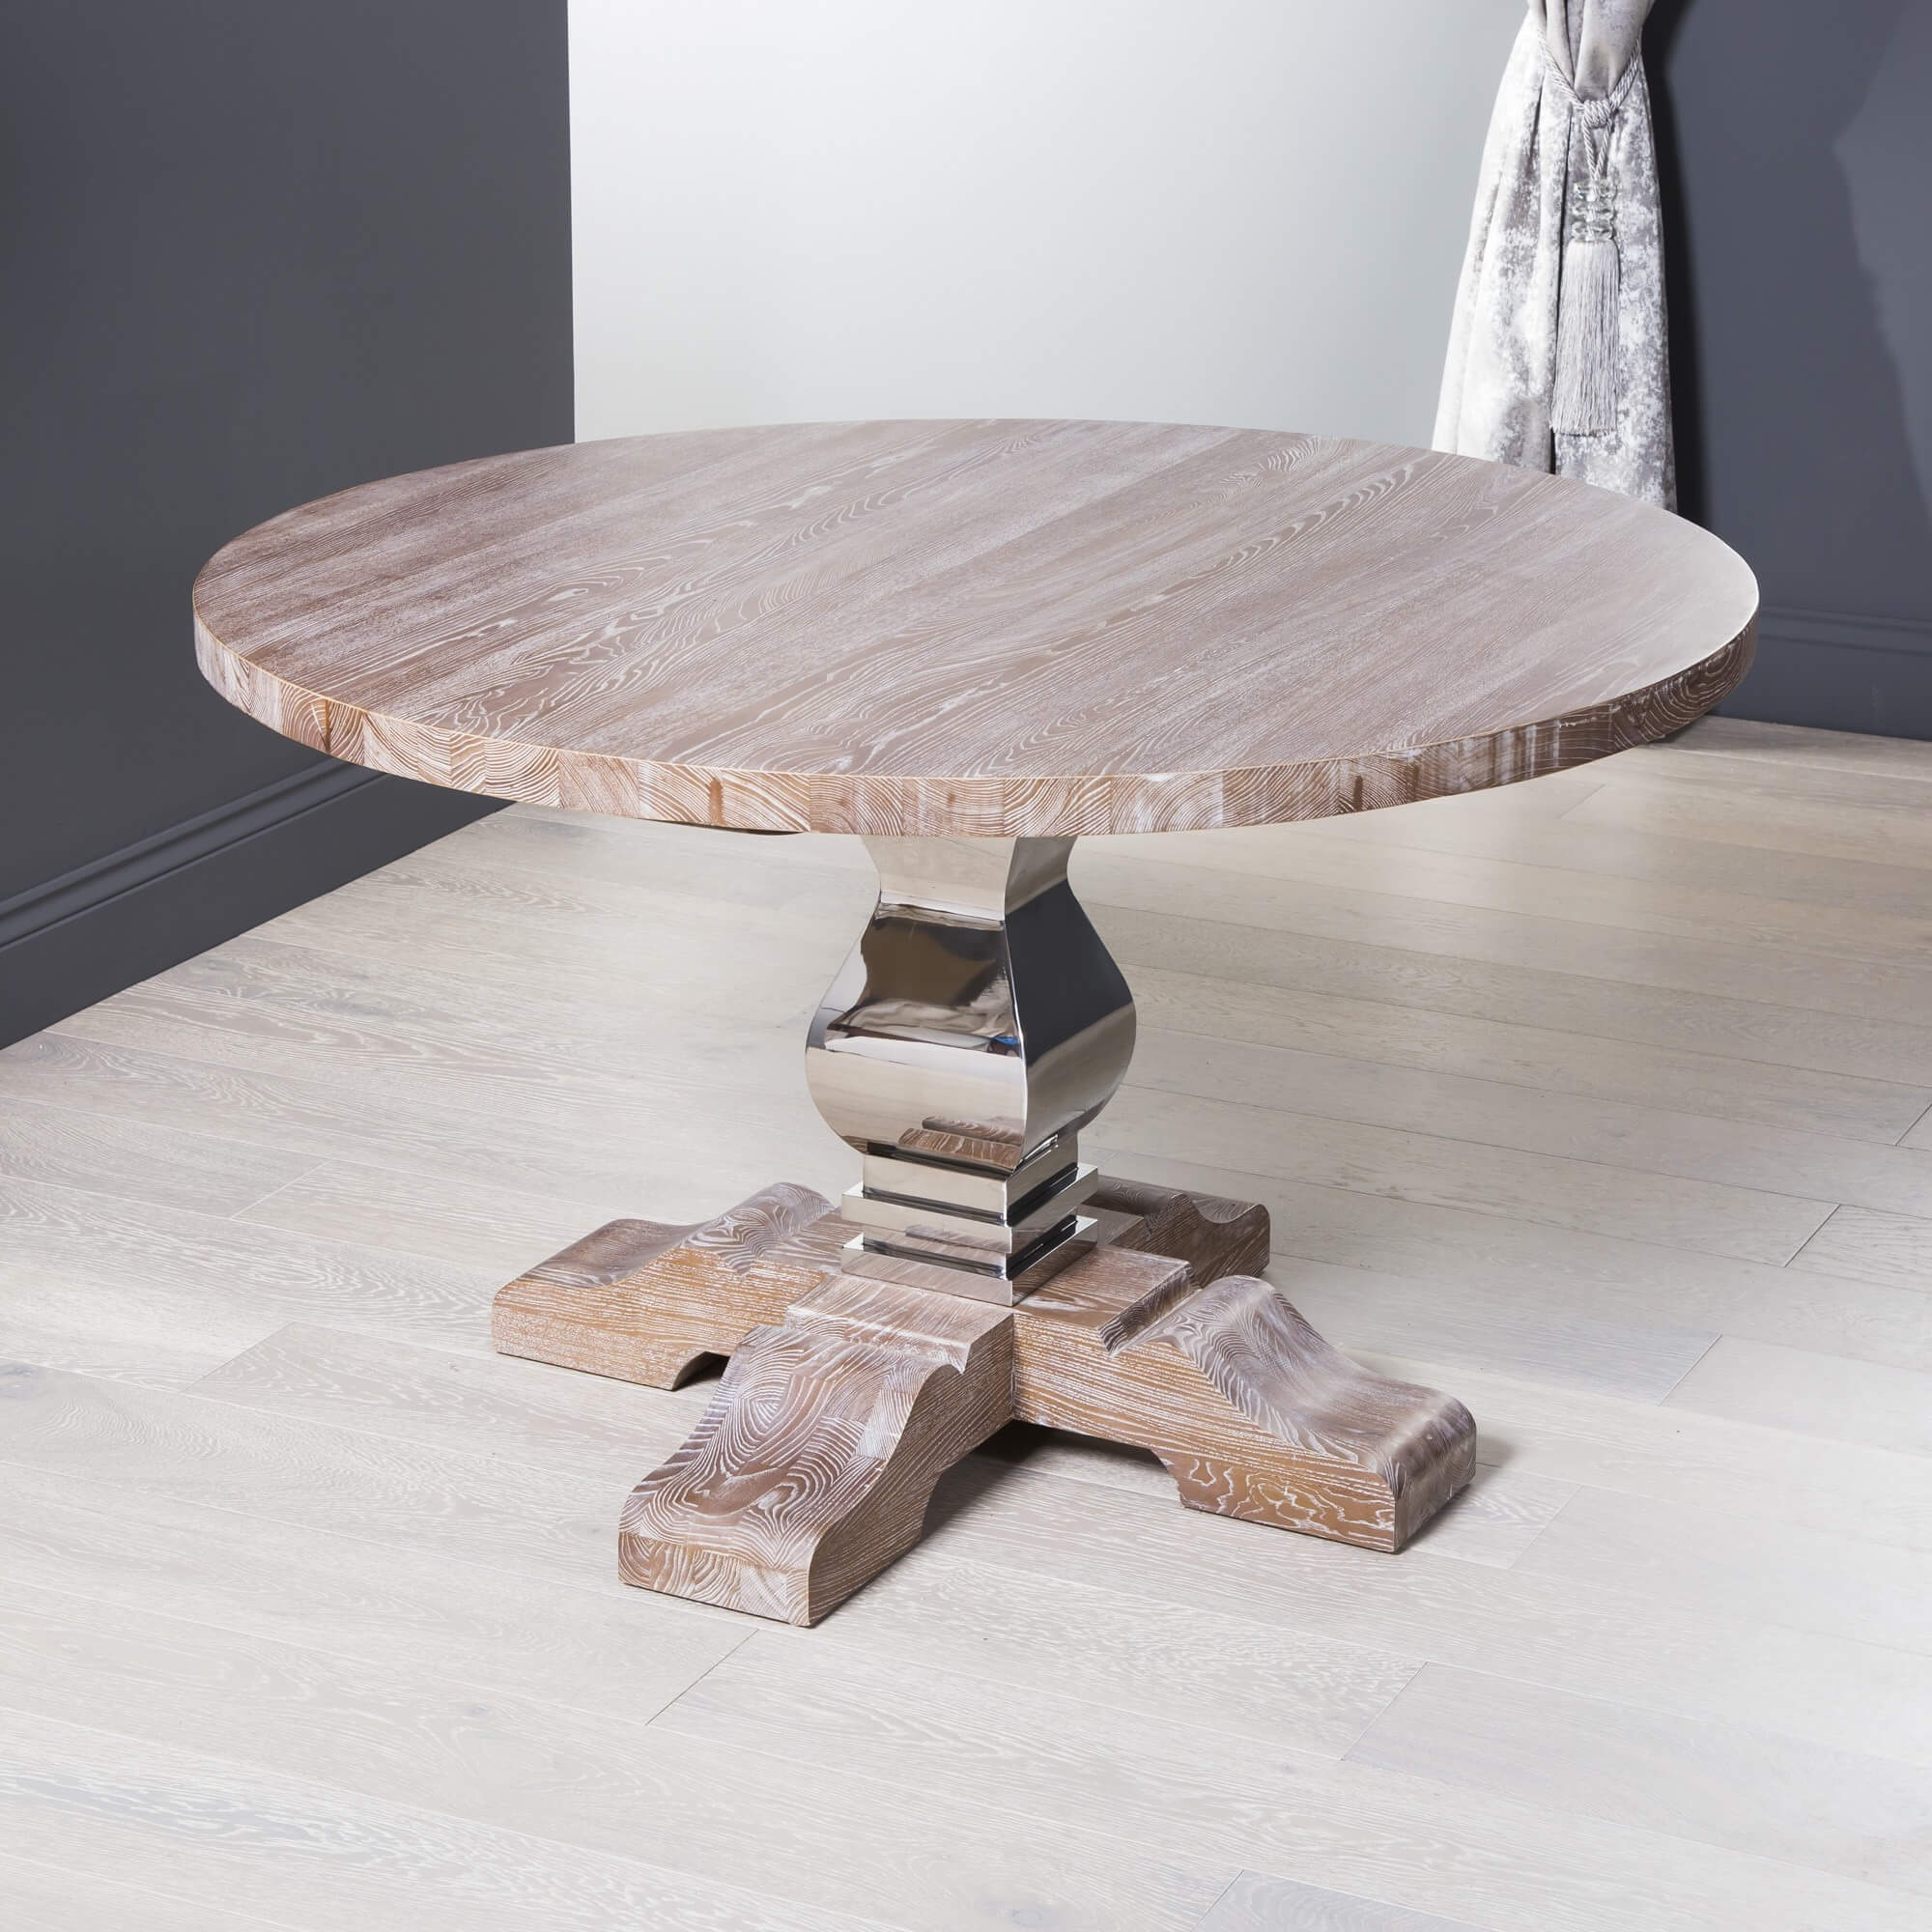 1.3m French Style Elm Circular Dining Table